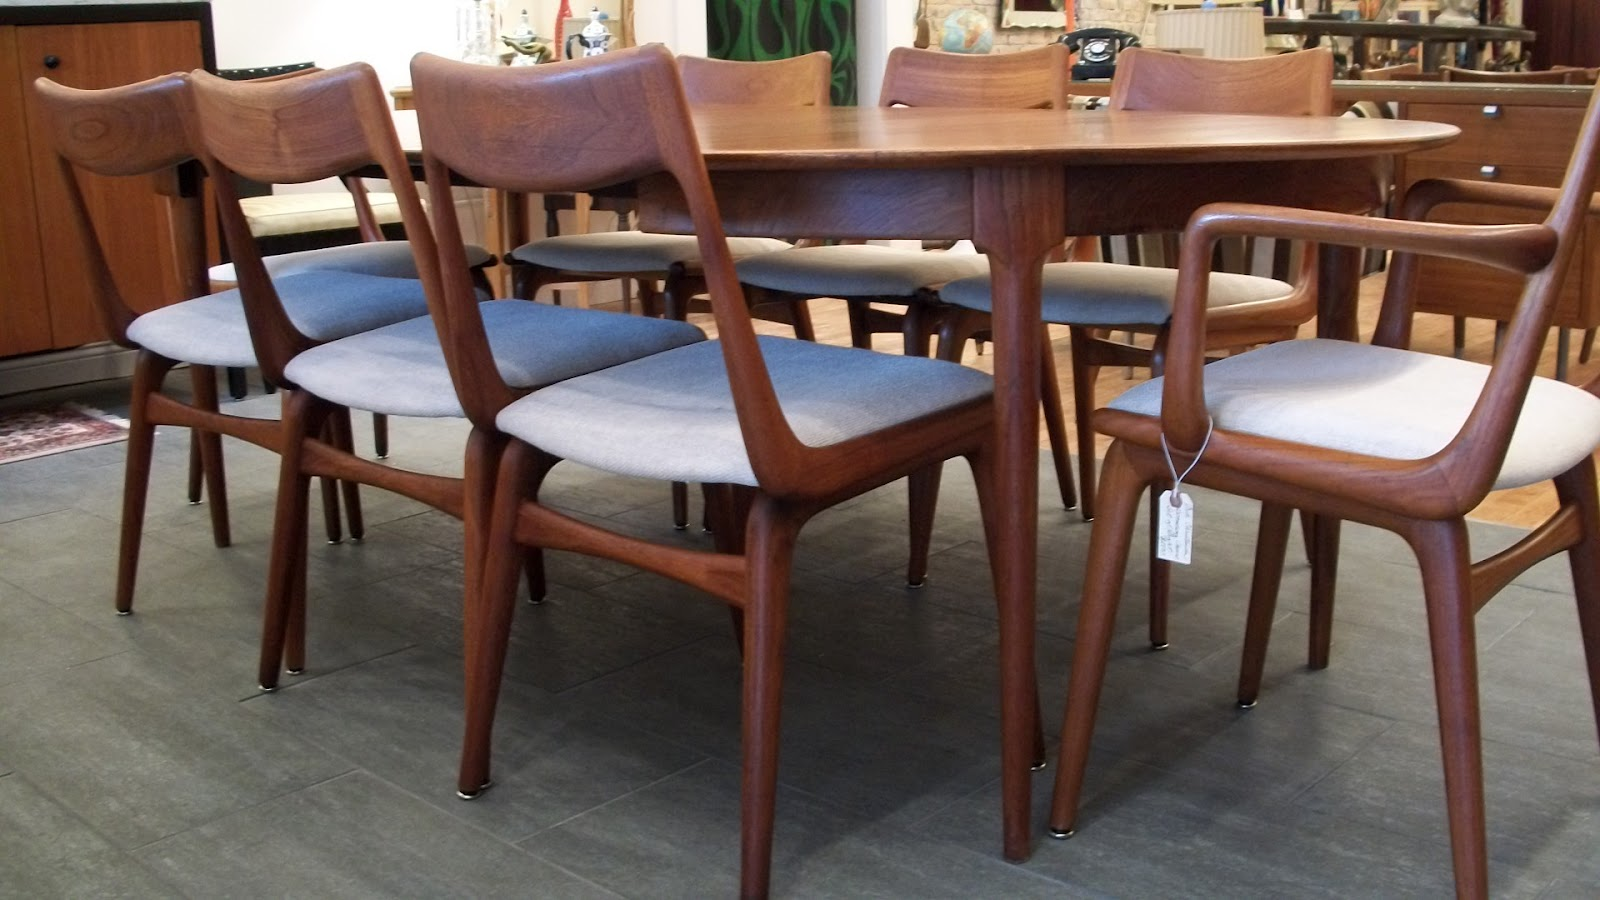 breathtaking danish scandinavian dining room furniture | 8 Danish Dining Room Chairs by Erik Christensen | An ...